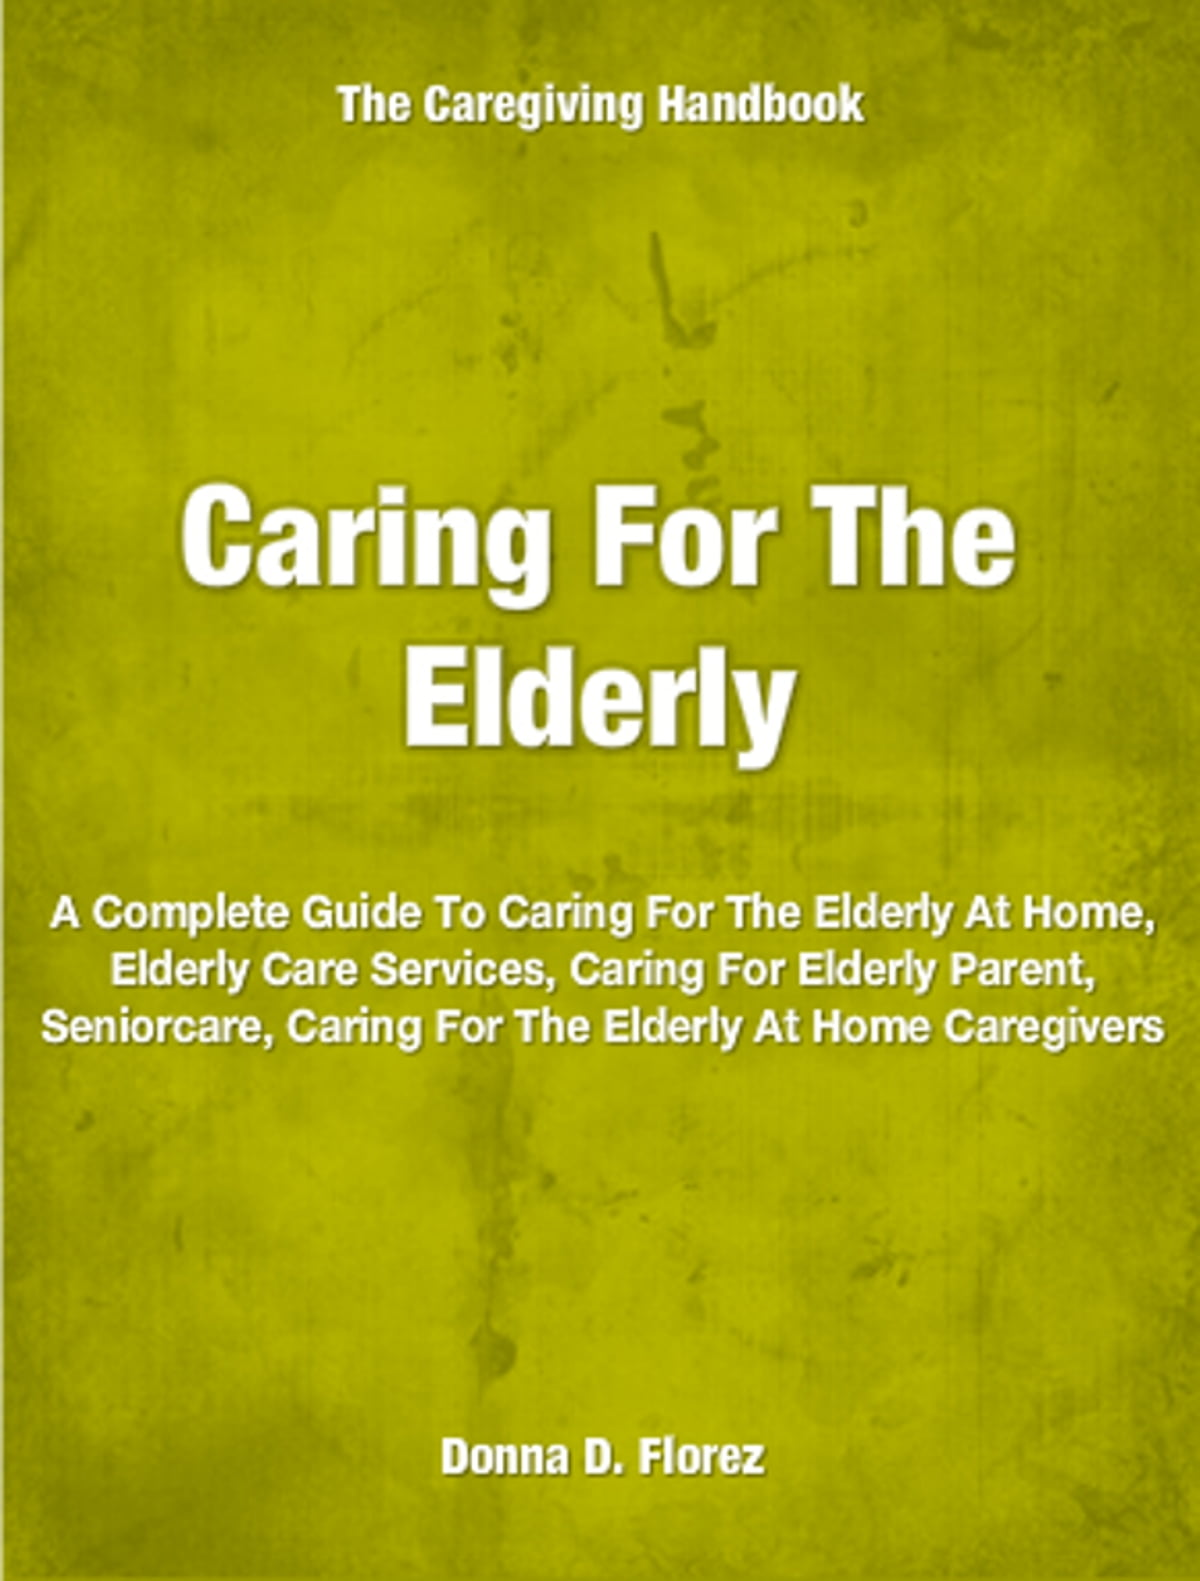 caring for the elderly l3 unit Explanation of the unit specifications 2019 – level 3 professional qualification in law and practice  a further change to the level 3 family law unit specification has been made learners and centres must ensure the most up to date version is used for 2019 studies.